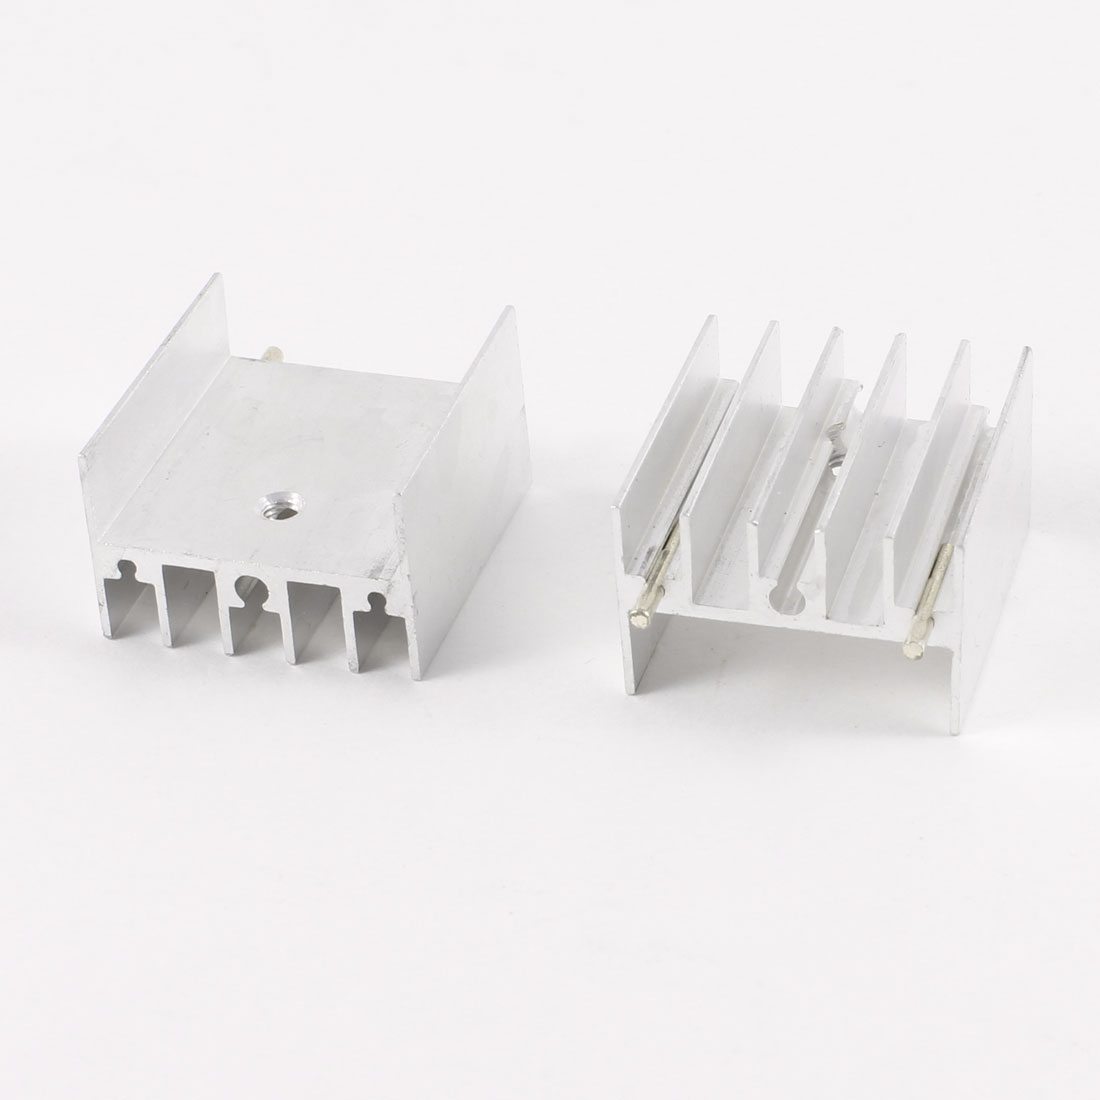 2 Pcs 25mm x 25mm x 15mm Heatsink Heat Dissipation Aluminium Cooling Fin